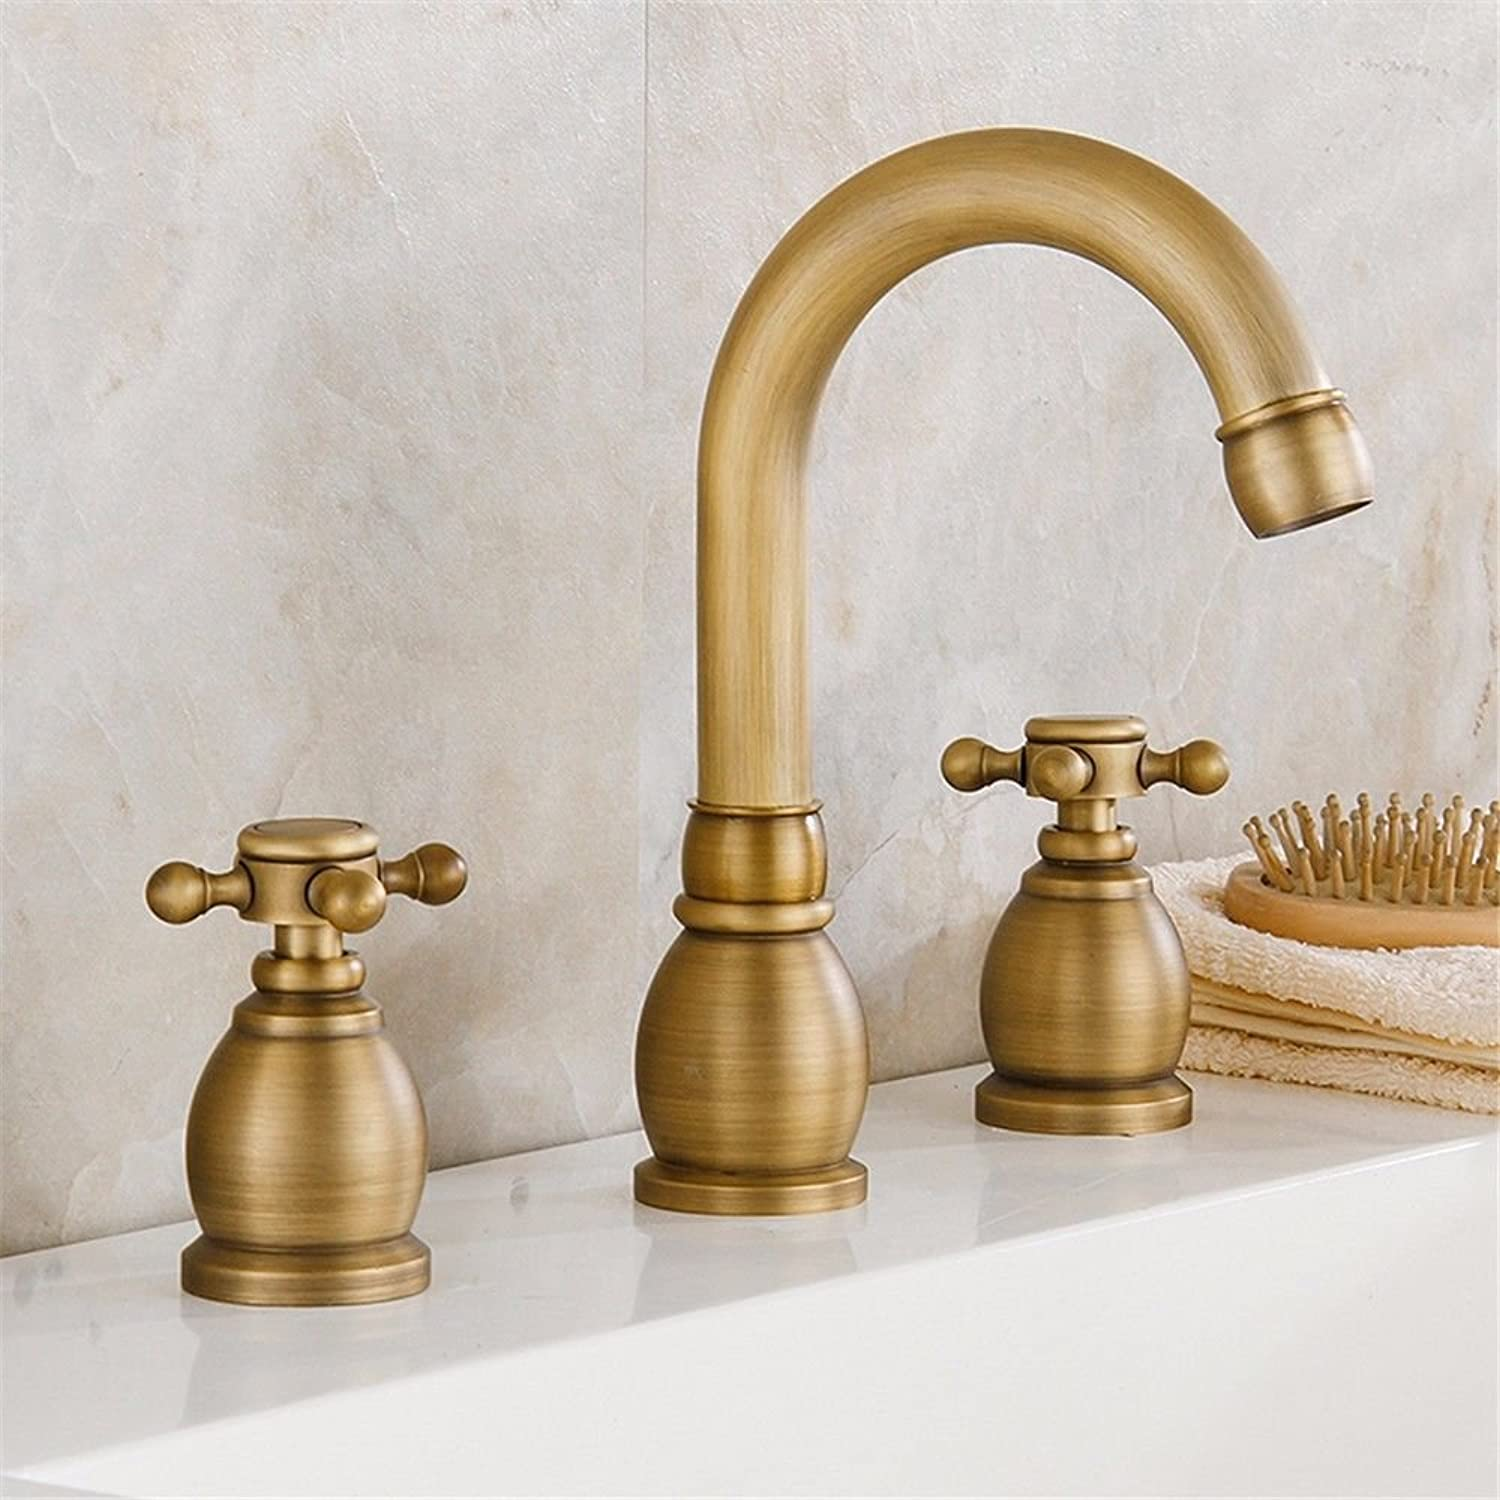 Fbict Double Ou Waterfall No. Faucet Bathroom Three Hole Washing Art Basin Separate Hot and Cold Copper for Kitchen Bathroom Faucet Bid Tap